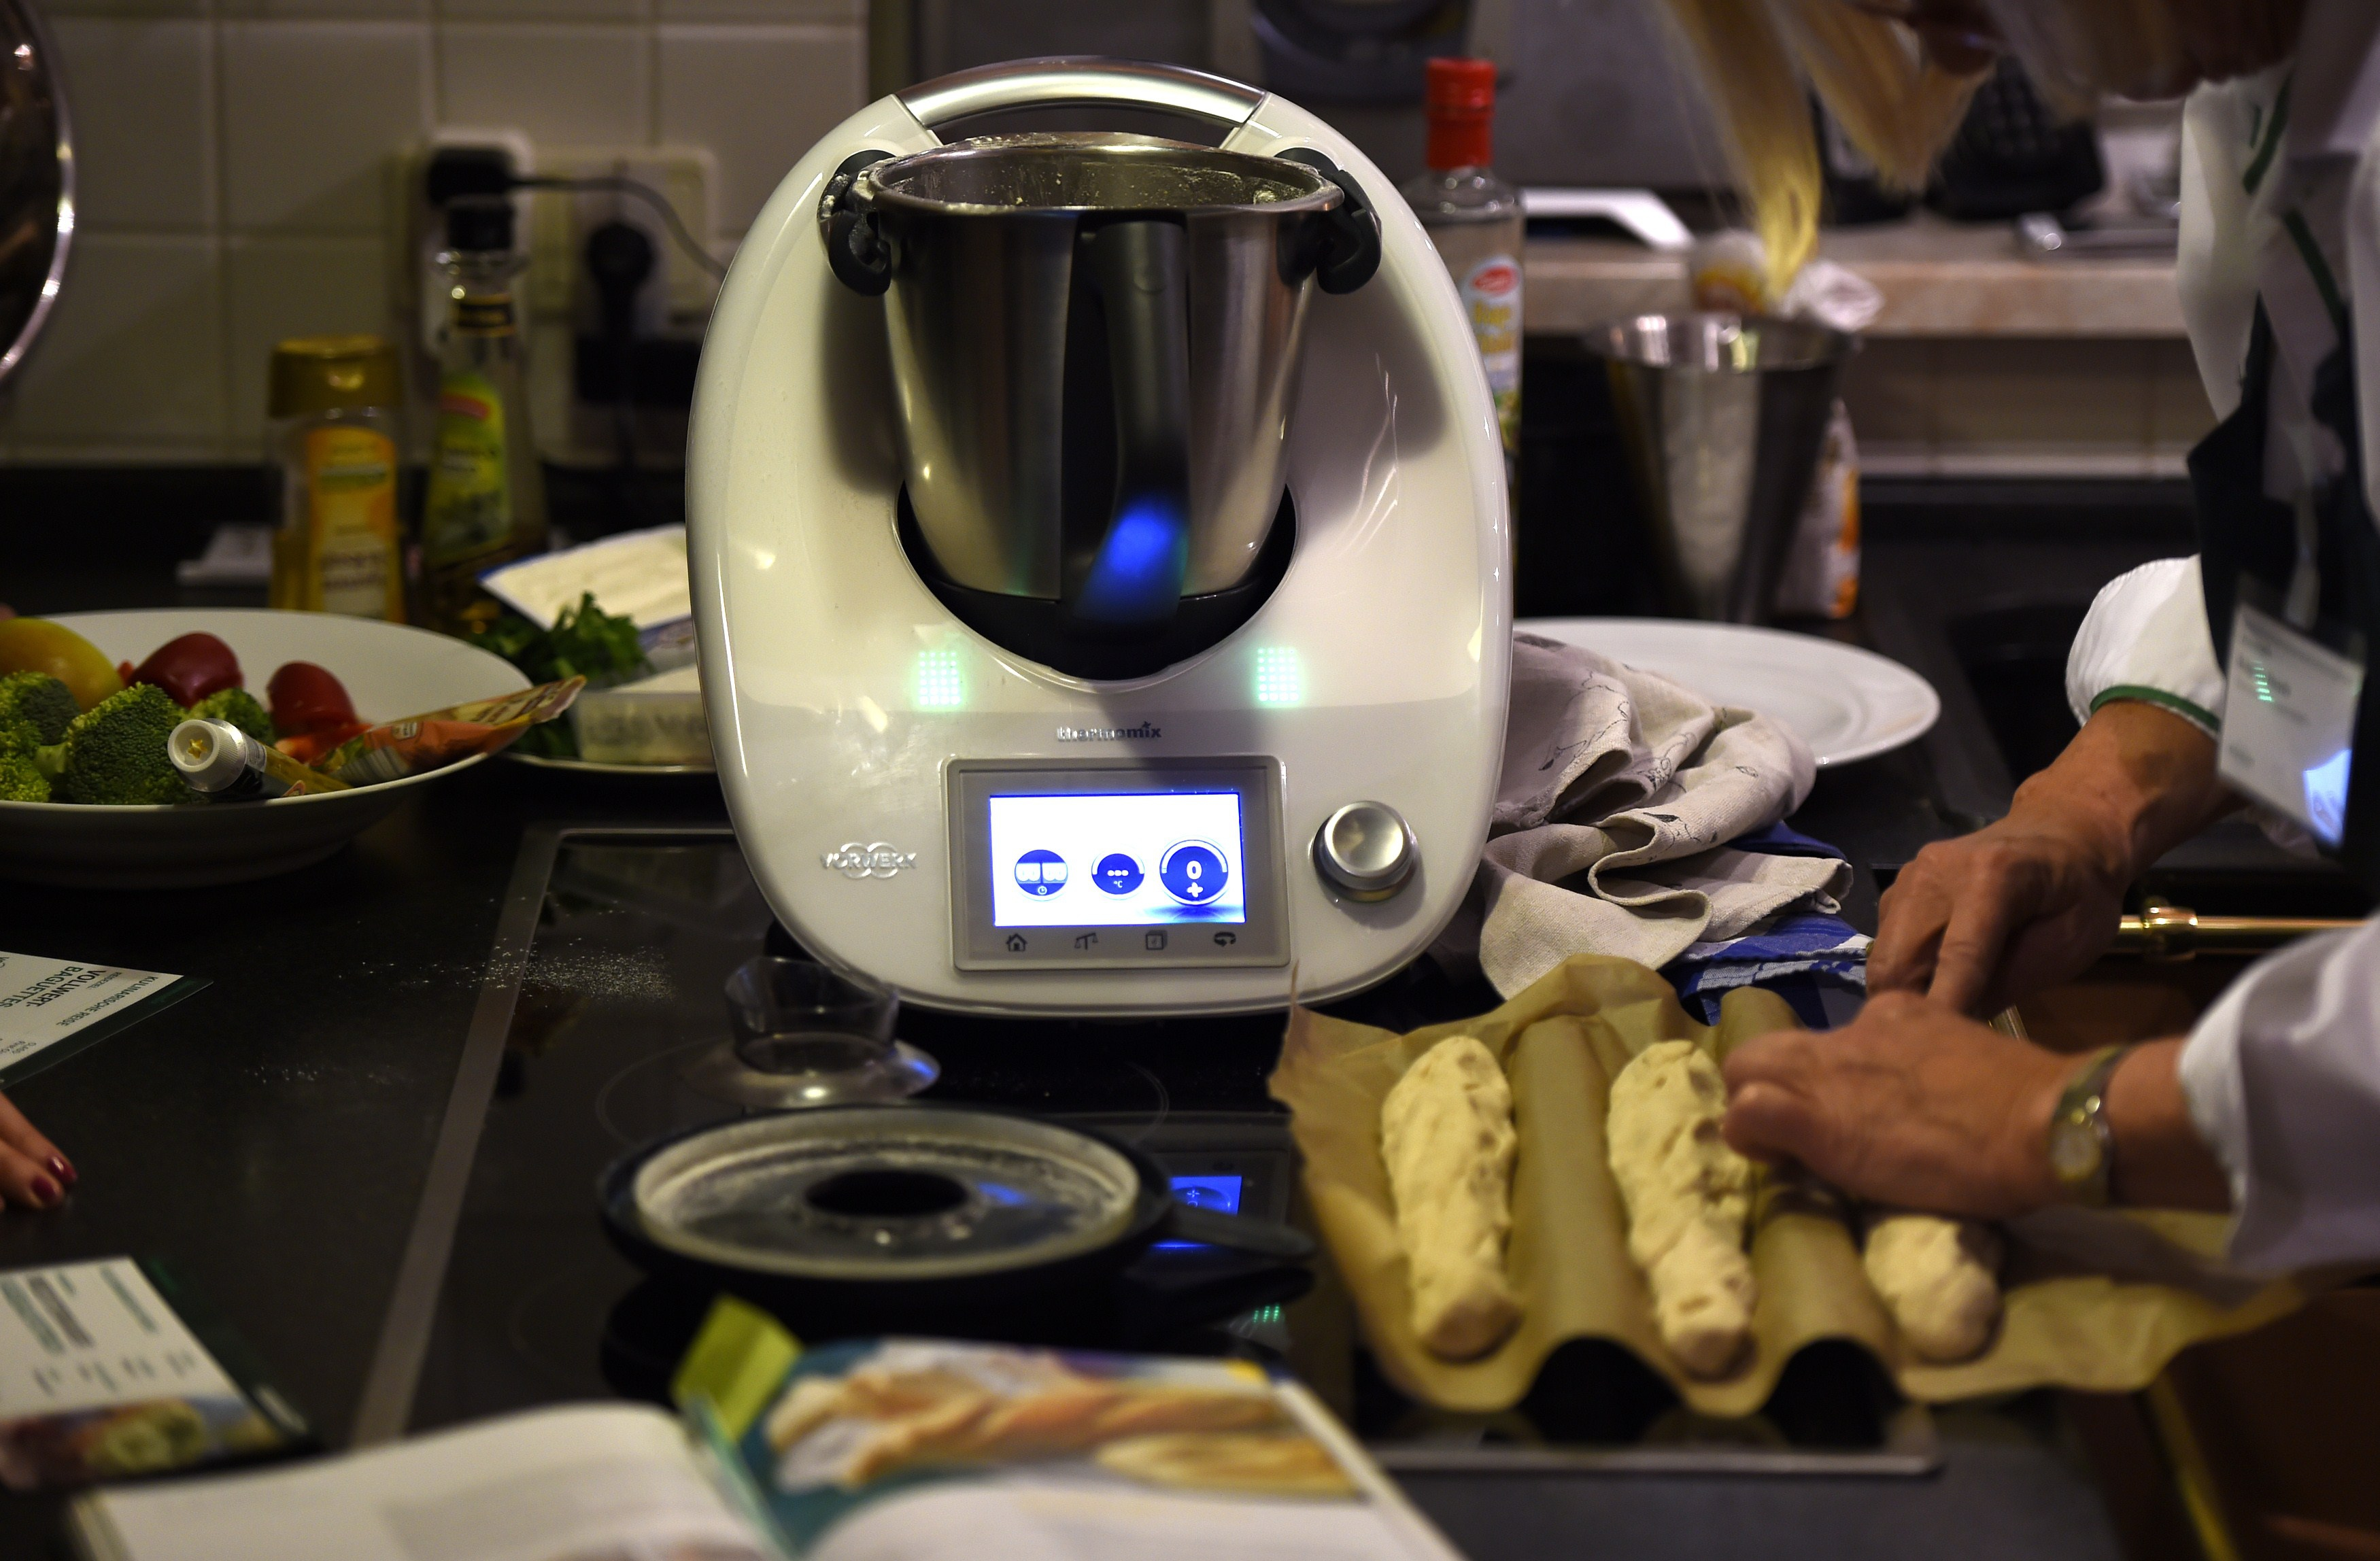 Uncategorized Thermomix Kitchen Appliance your kitchen needs a 1400 thermomix bloomberg